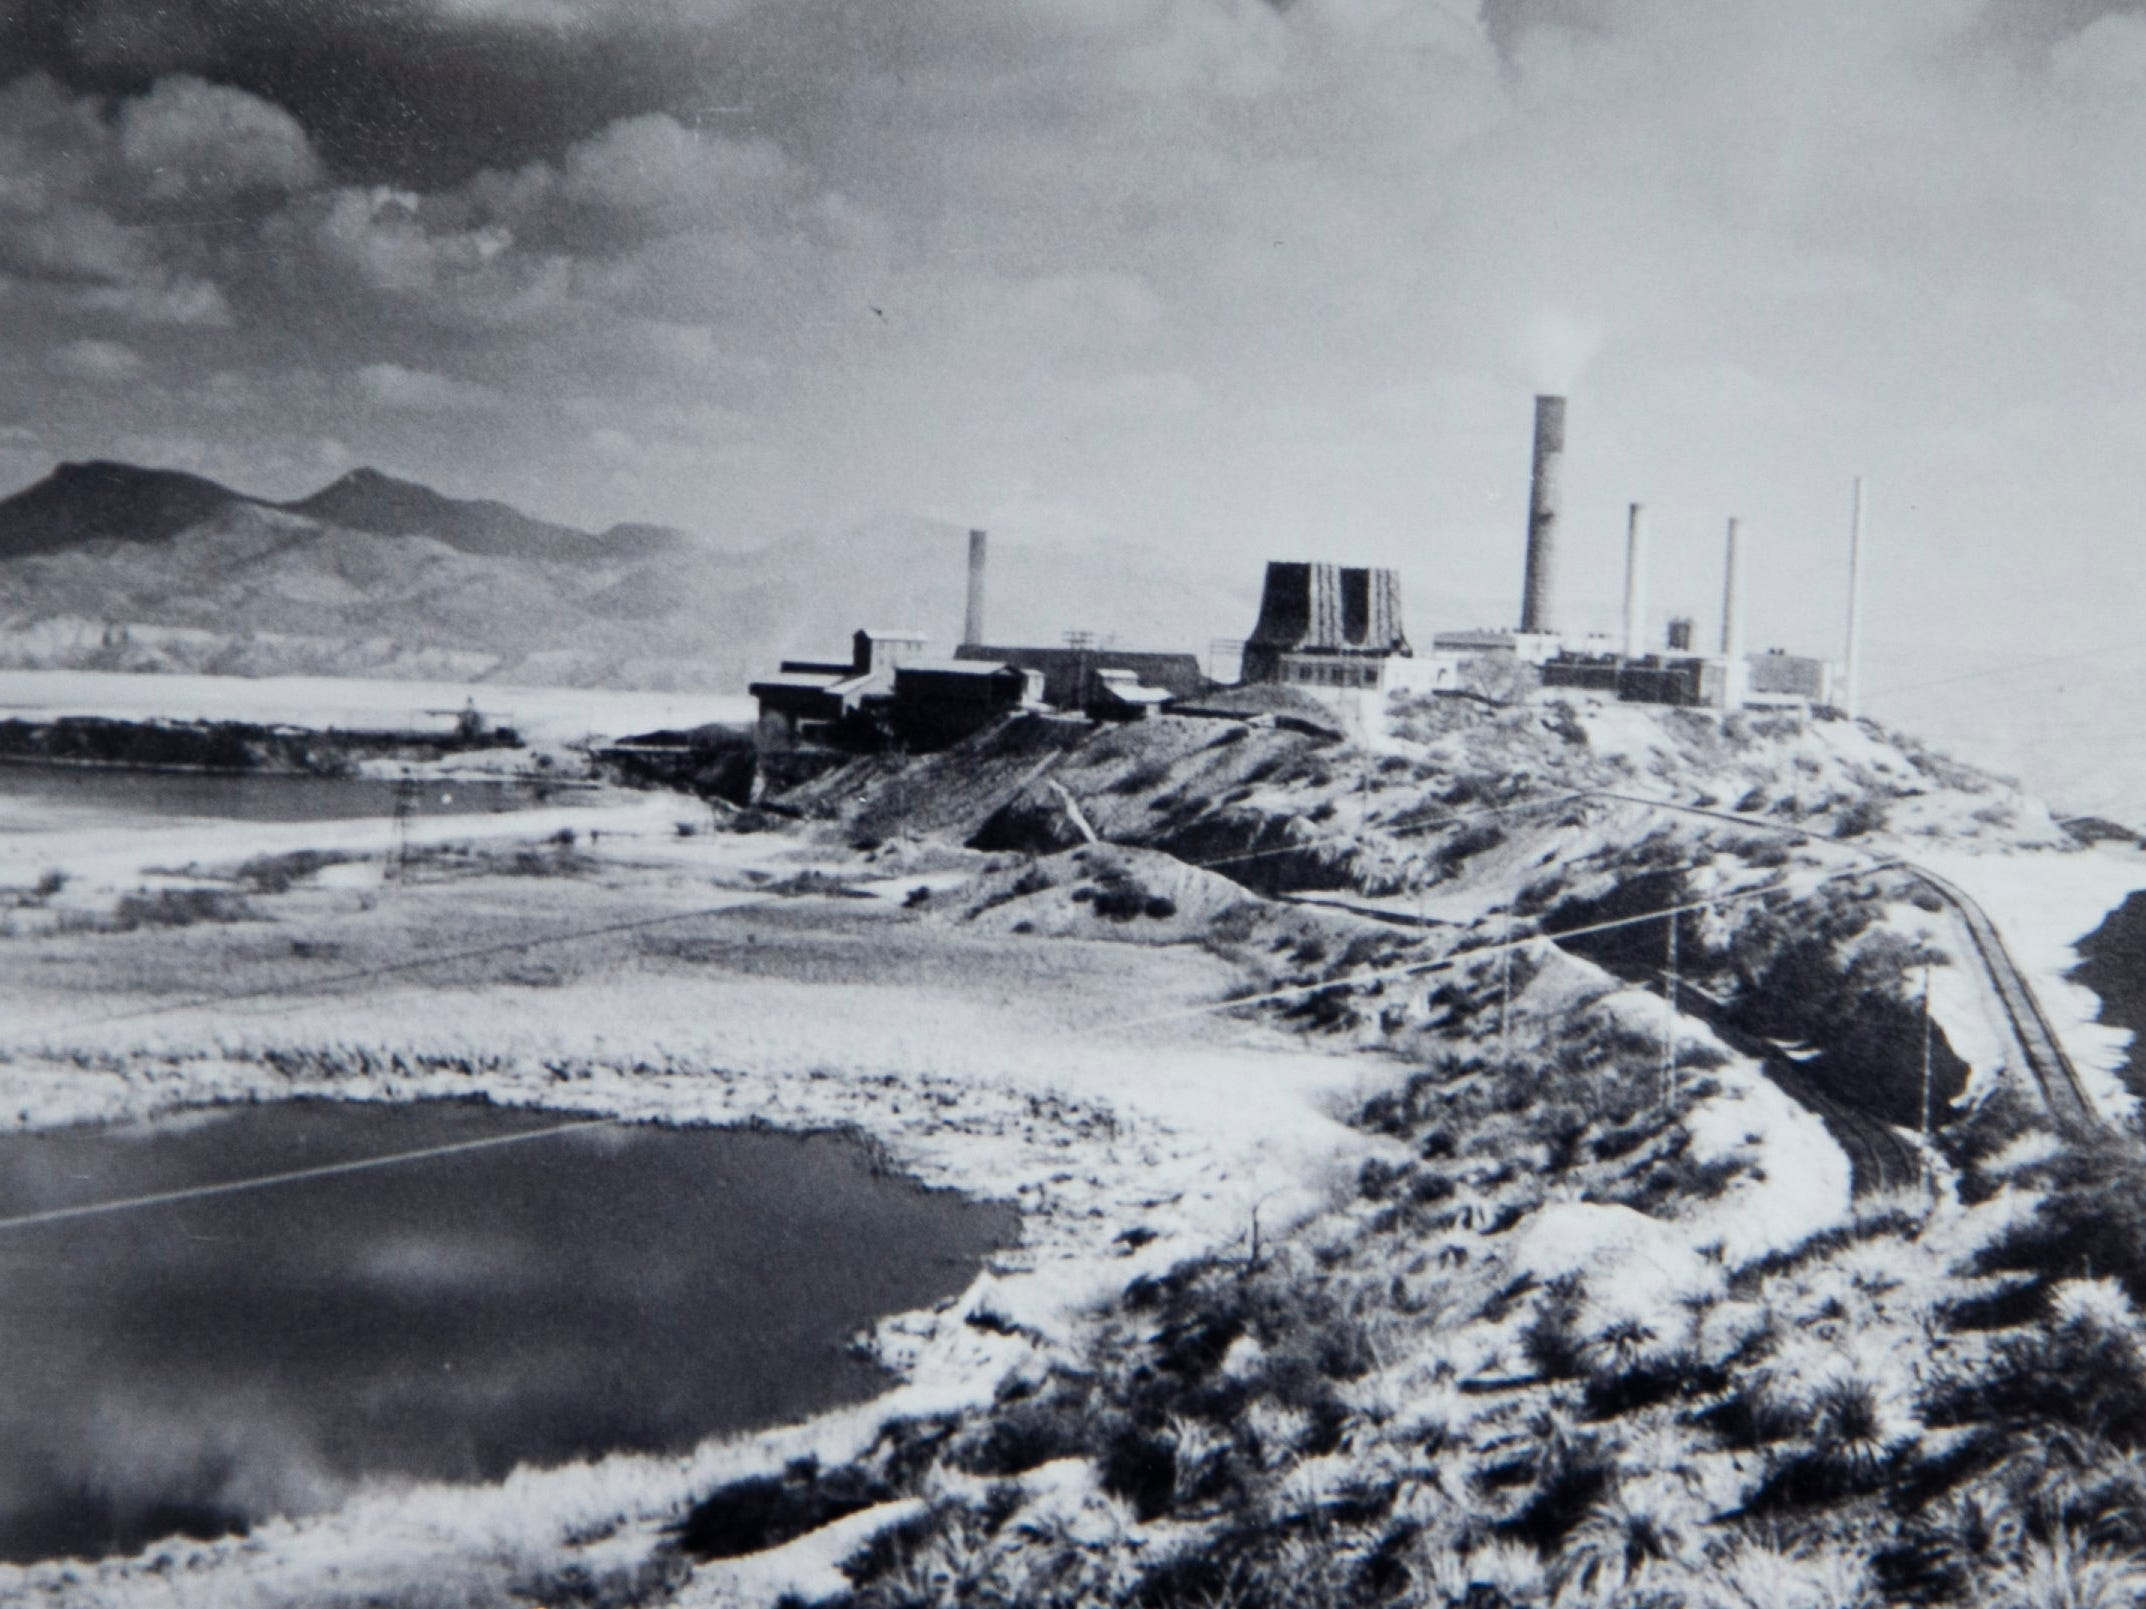 An undated photo of the Inspiration Consolidated Copper Company mine in the Miami/Claypool area. Joe Campos worked at this mine in the late 1940s and experienced racism because of his Mexican-American heritage. After working in the mine for several years, he re-enlisted in the military. It is believed that Staff Sgt. Joe Campos, a gunner on a B-26 bomber, was likely the first American killed in the Korean War when his plane went down in the Yellow Sea on June 28, 1950.